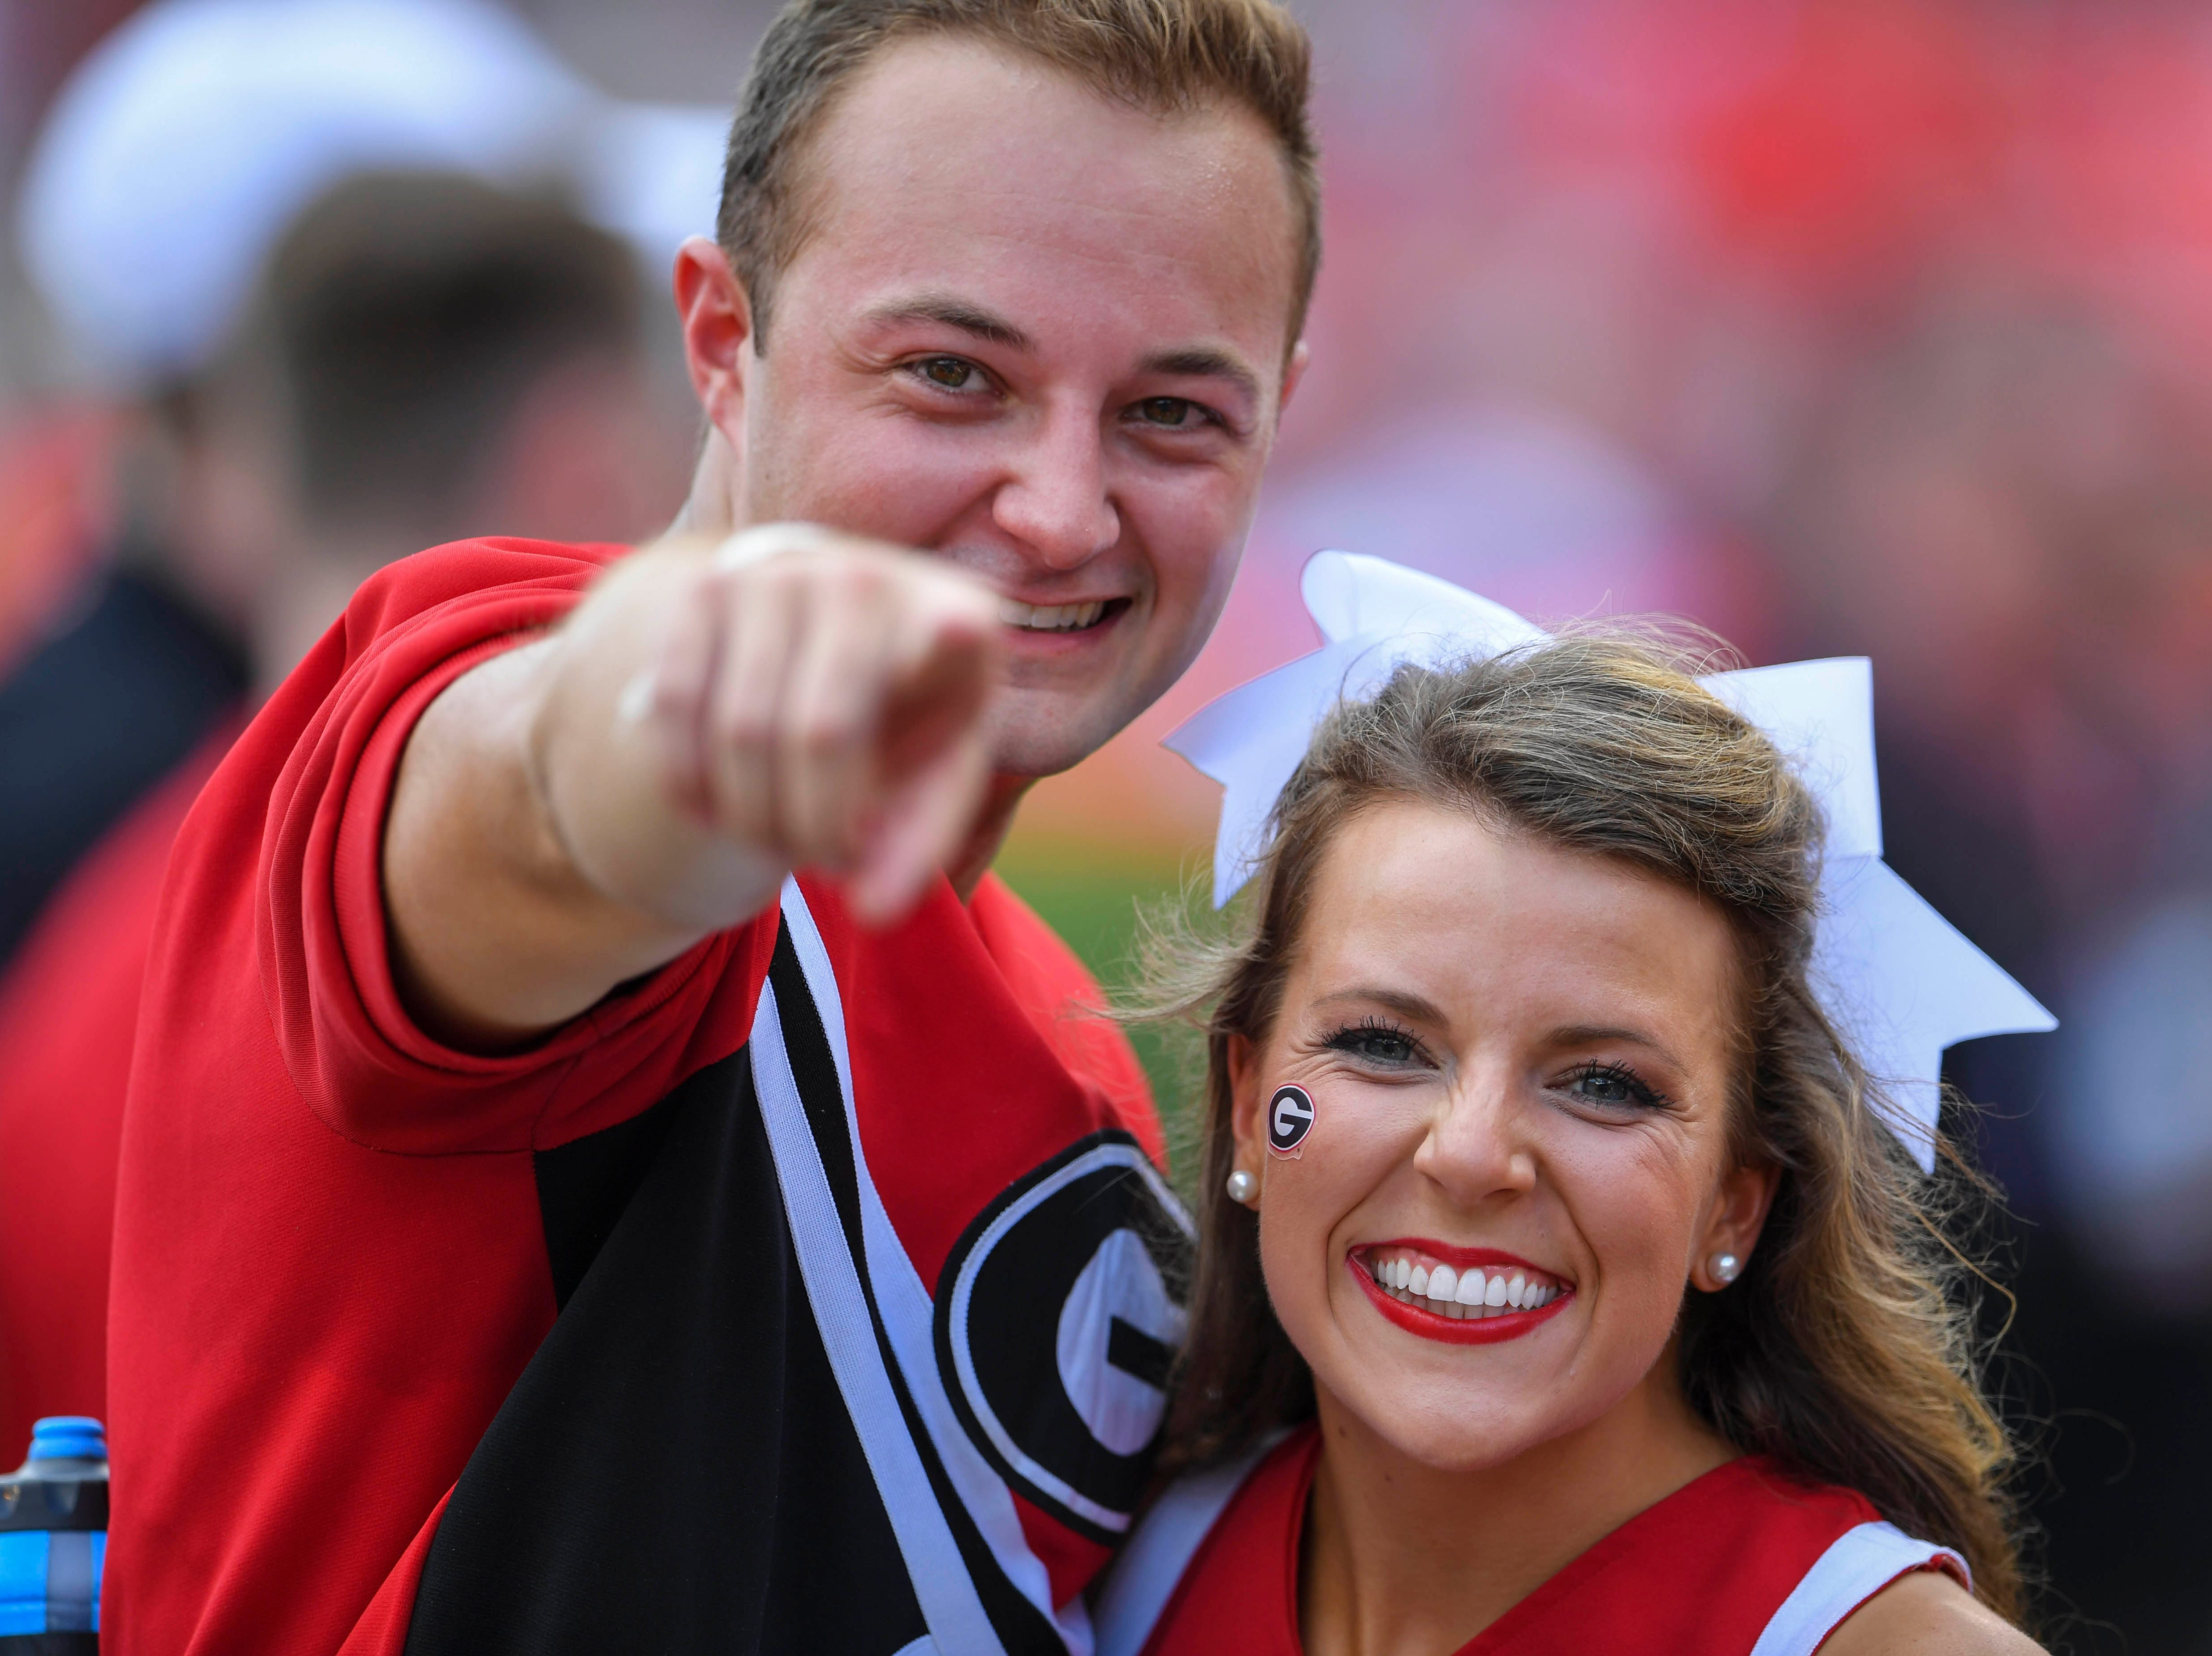 Week 1: Georgia Bulldogs cheerleaders pose prior to the game against the Austin Peay Governors at Sanford Stadium.